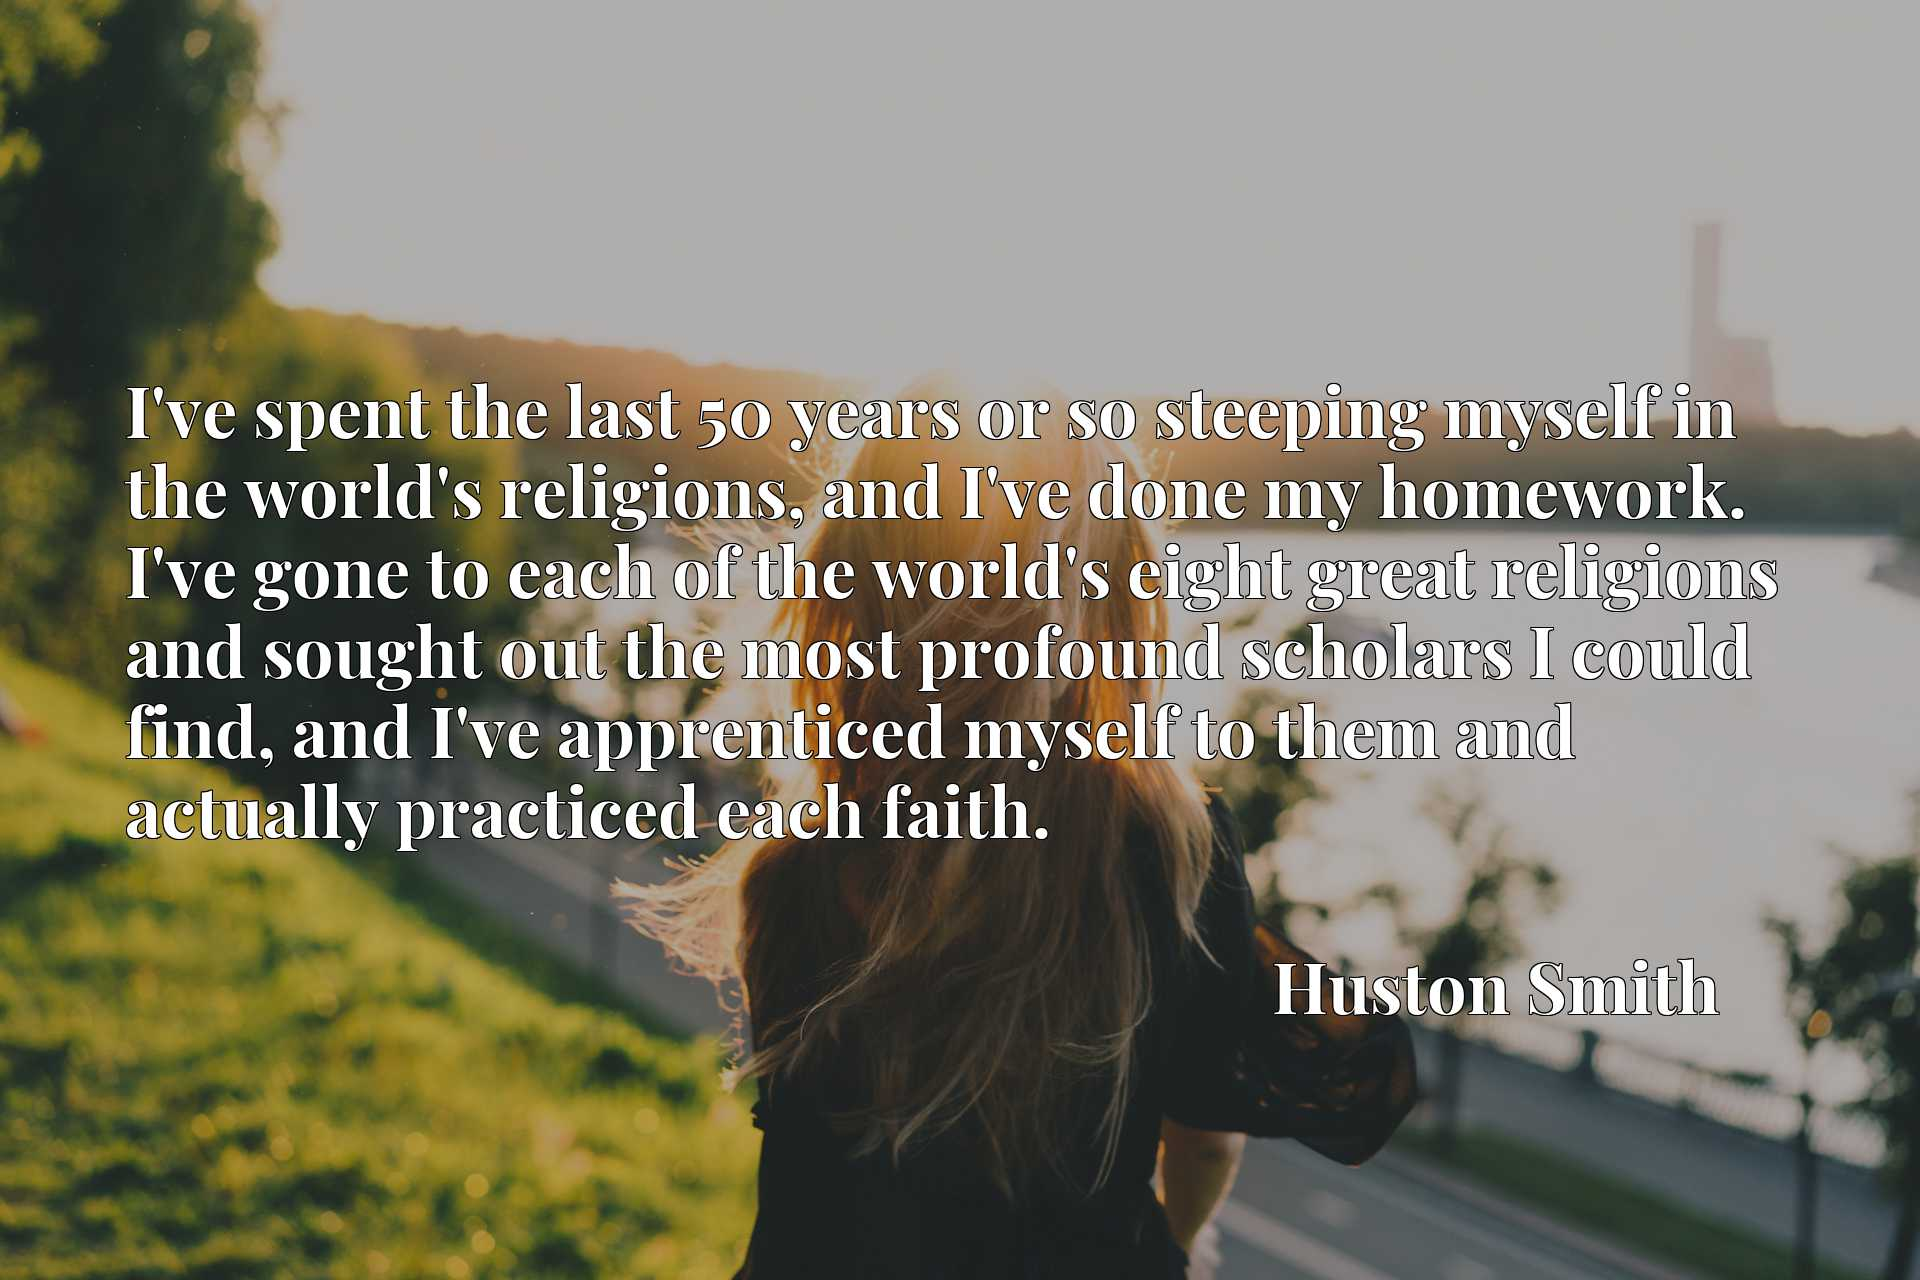 I've spent the last 50 years or so steeping myself in the world's religions, and I've done my homework. I've gone to each of the world's eight great religions and sought out the most profound scholars I could find, and I've apprenticed myself to them and actually practiced each faith.